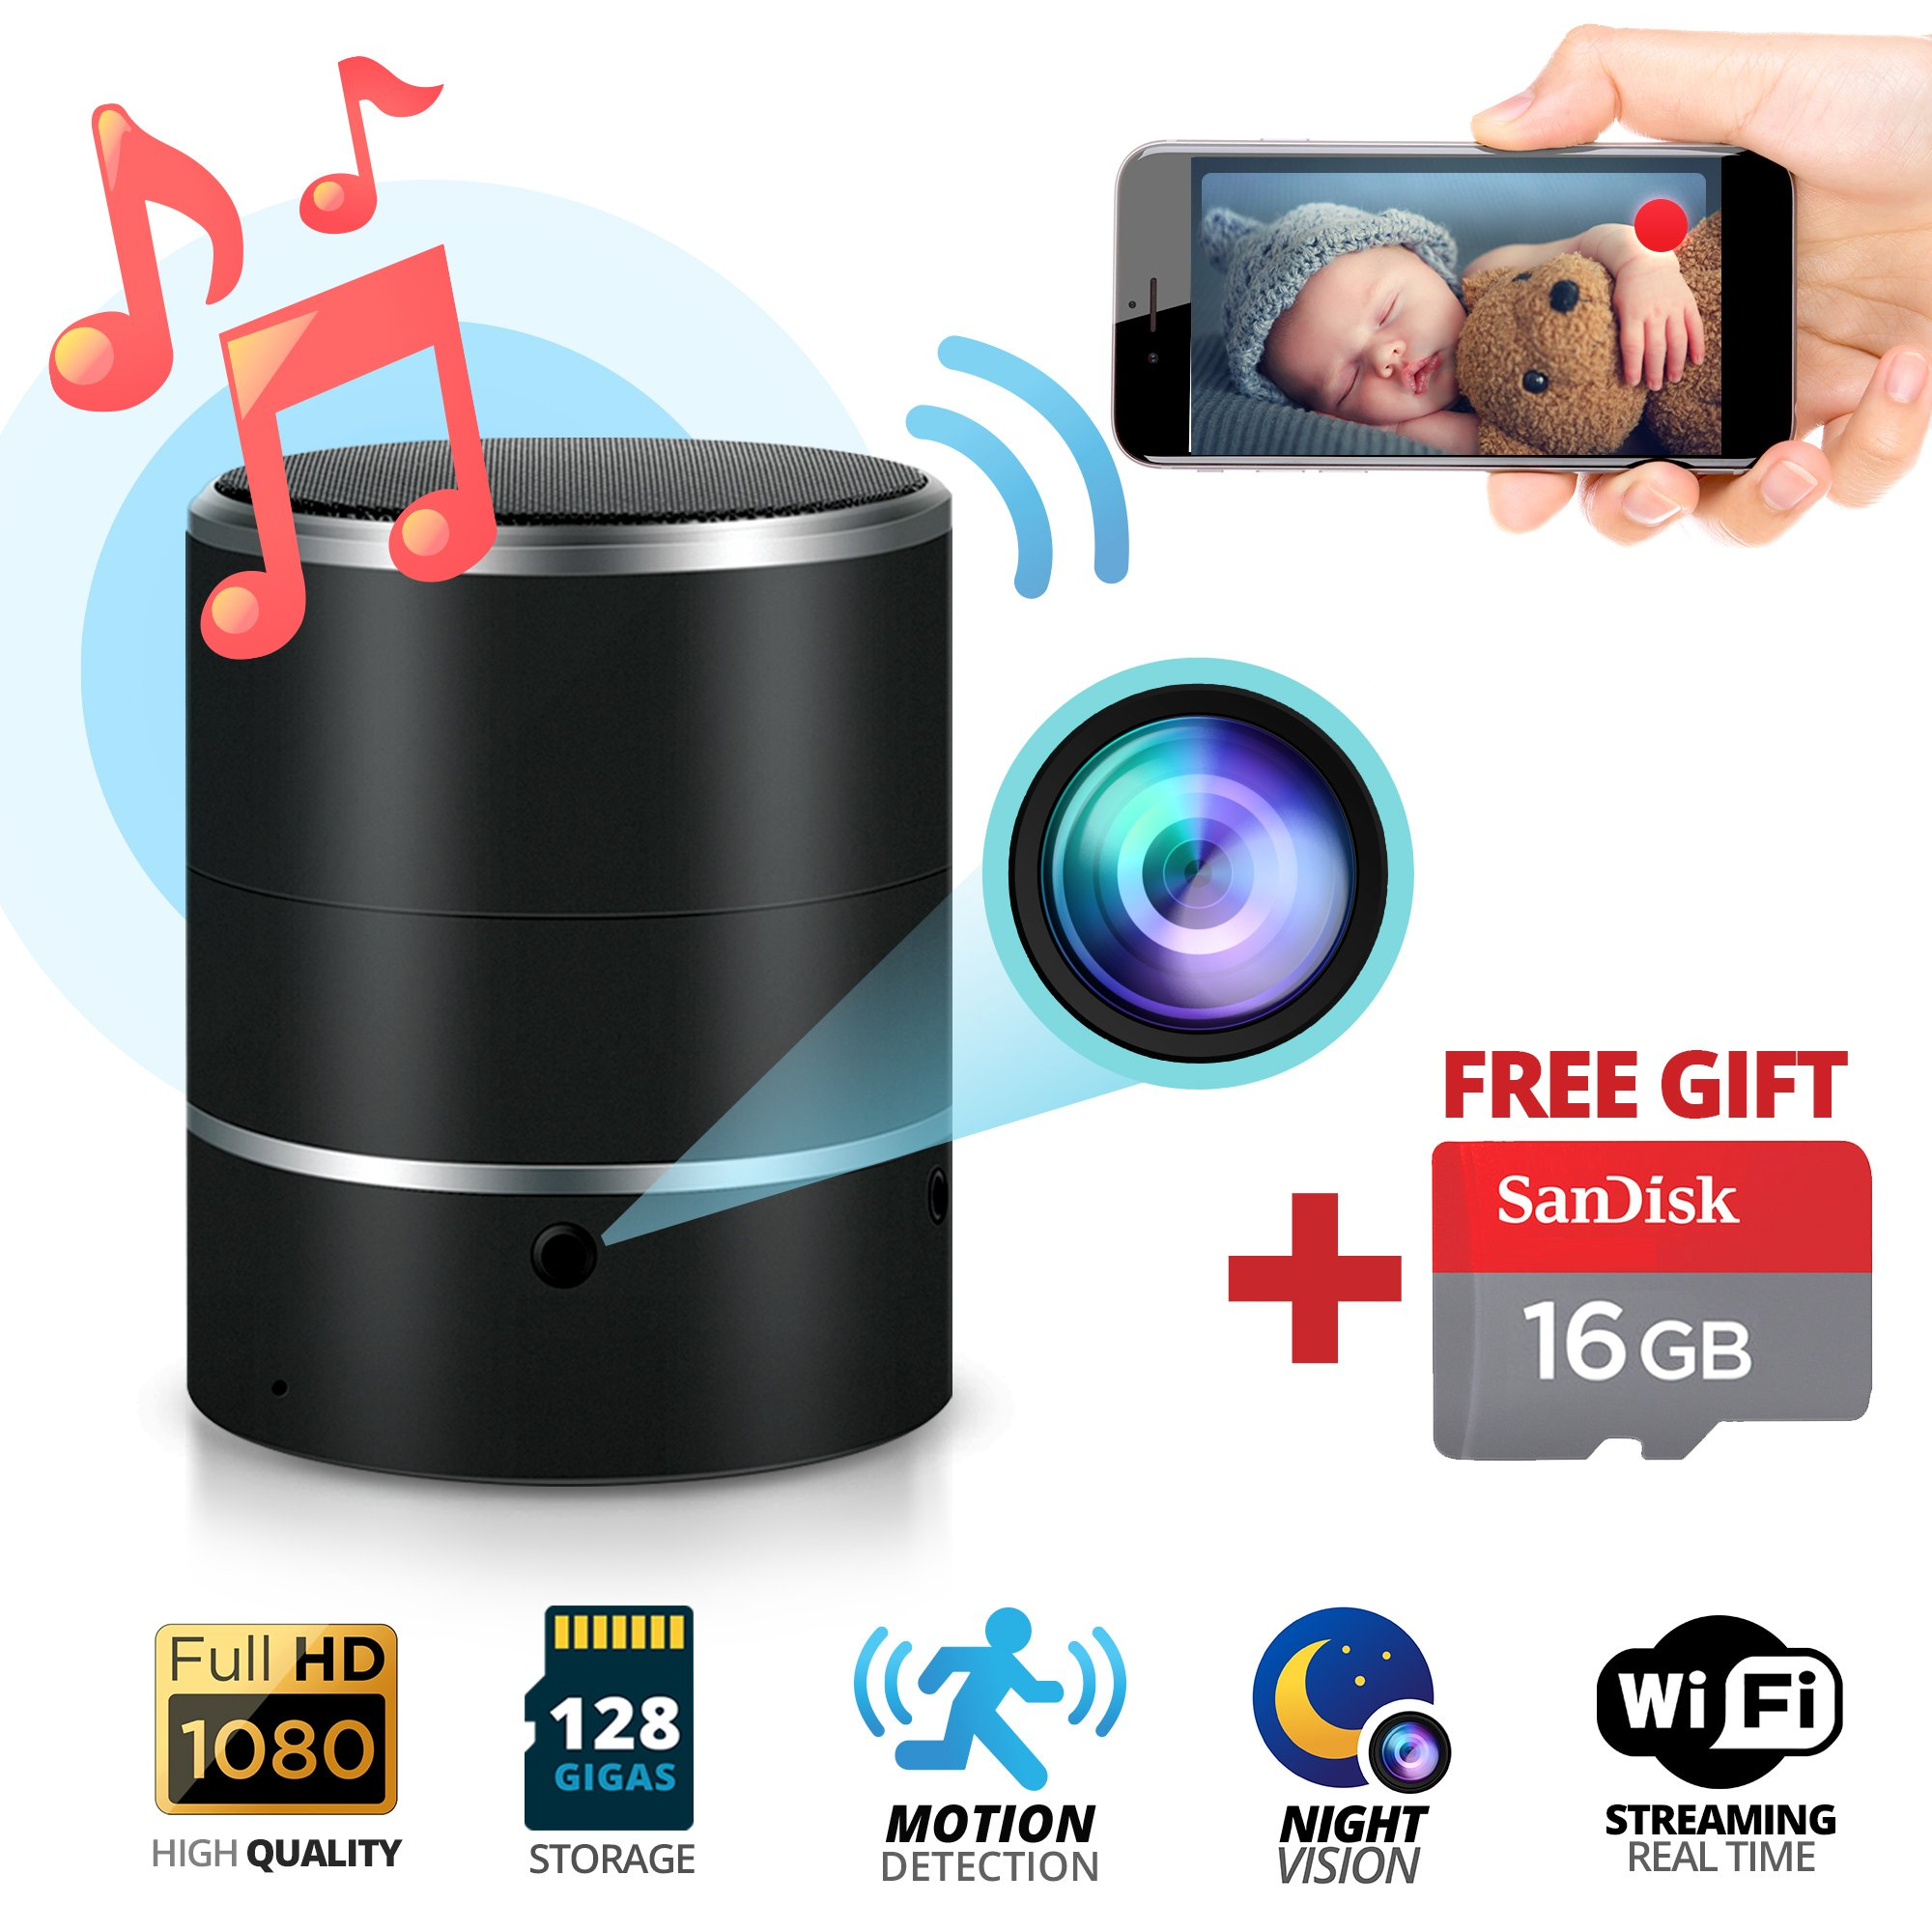 Spy Hidden Camera & Bluetooth Speaker 1080P Night Vision Motion Detection SD Card 16GB Included WiFi Remote Surveillance Security Camera Nanny Cam 180° Rotating Lens with Android & iOS iPhone App